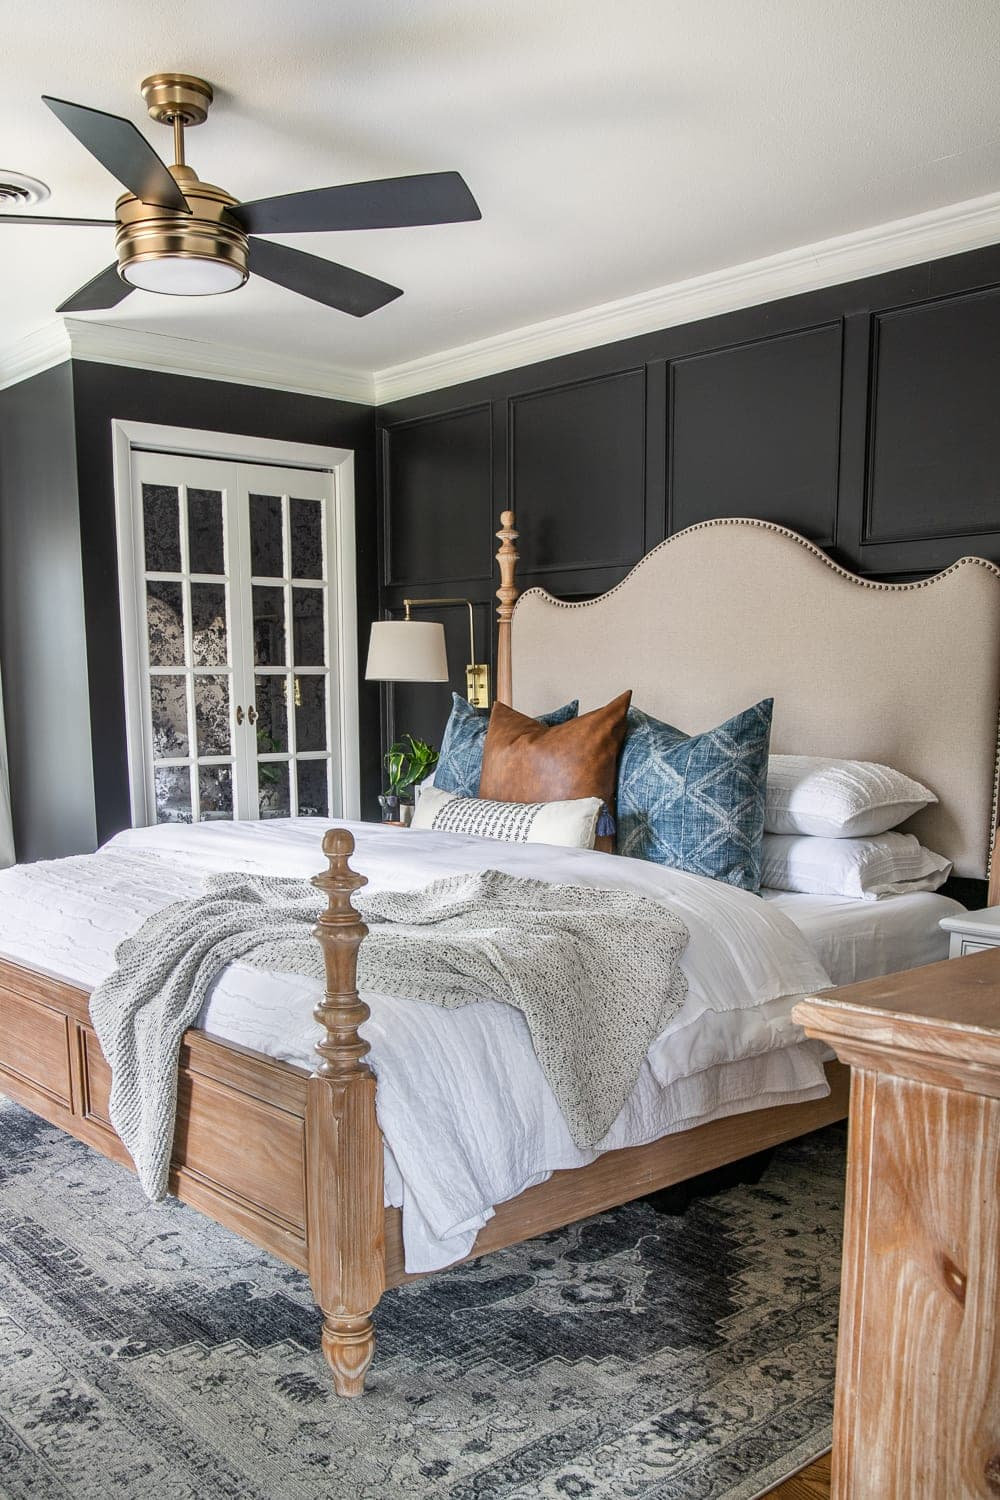 A plain, dated master bedroom gets a modern vintage makeover with moody black paint, modern pillows, vintage style furniture, and budget DIY grid molding focal wall.